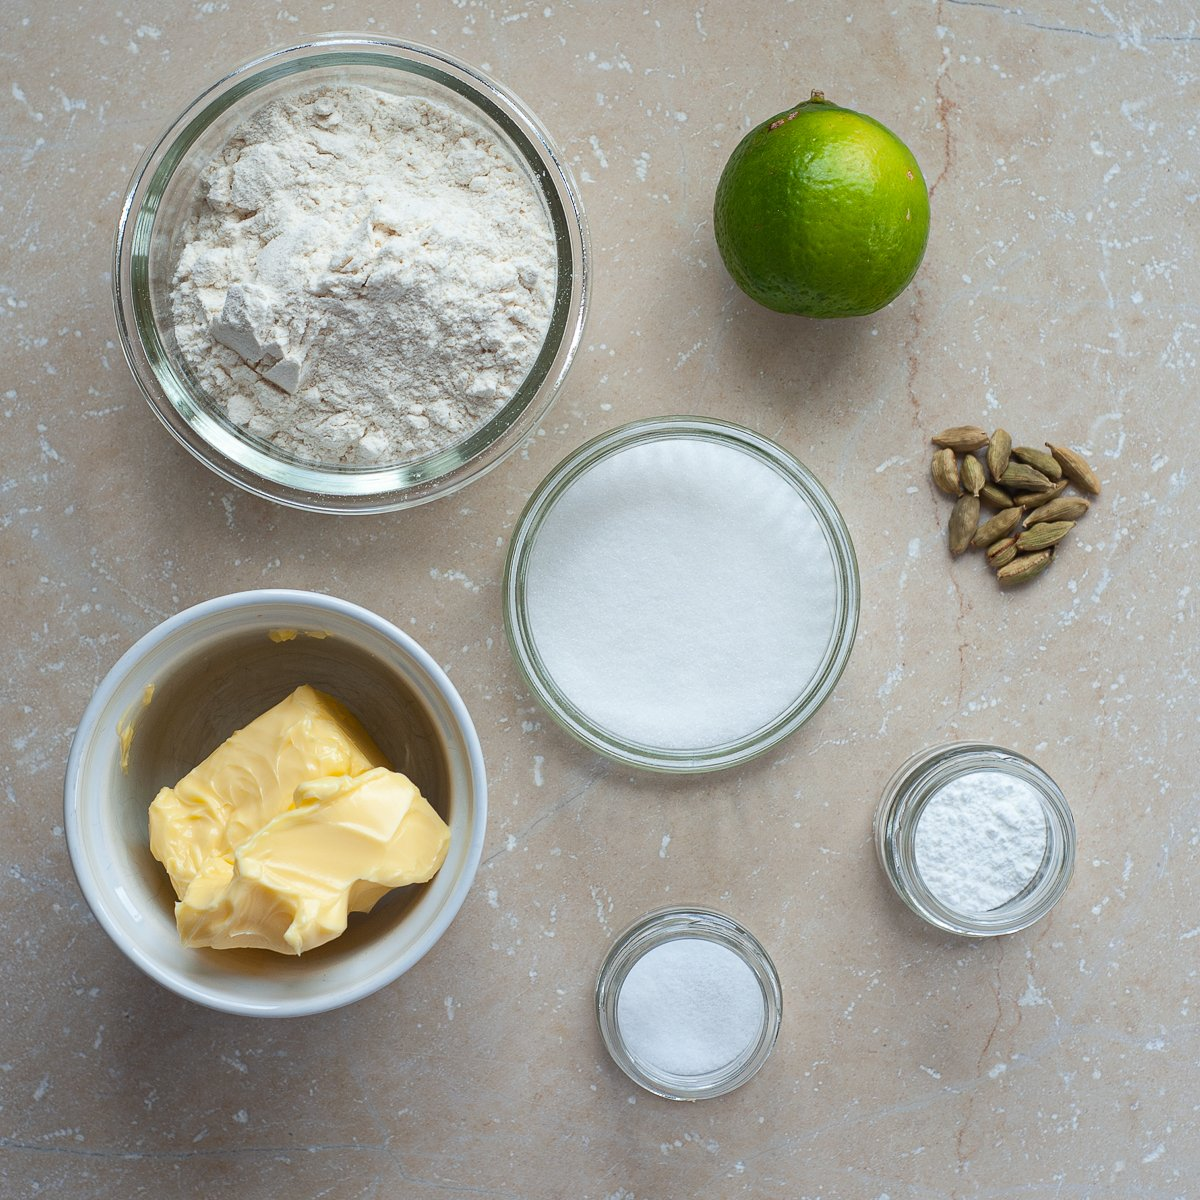 all the ingredients needed to make Lime and Cardamom Biscuits